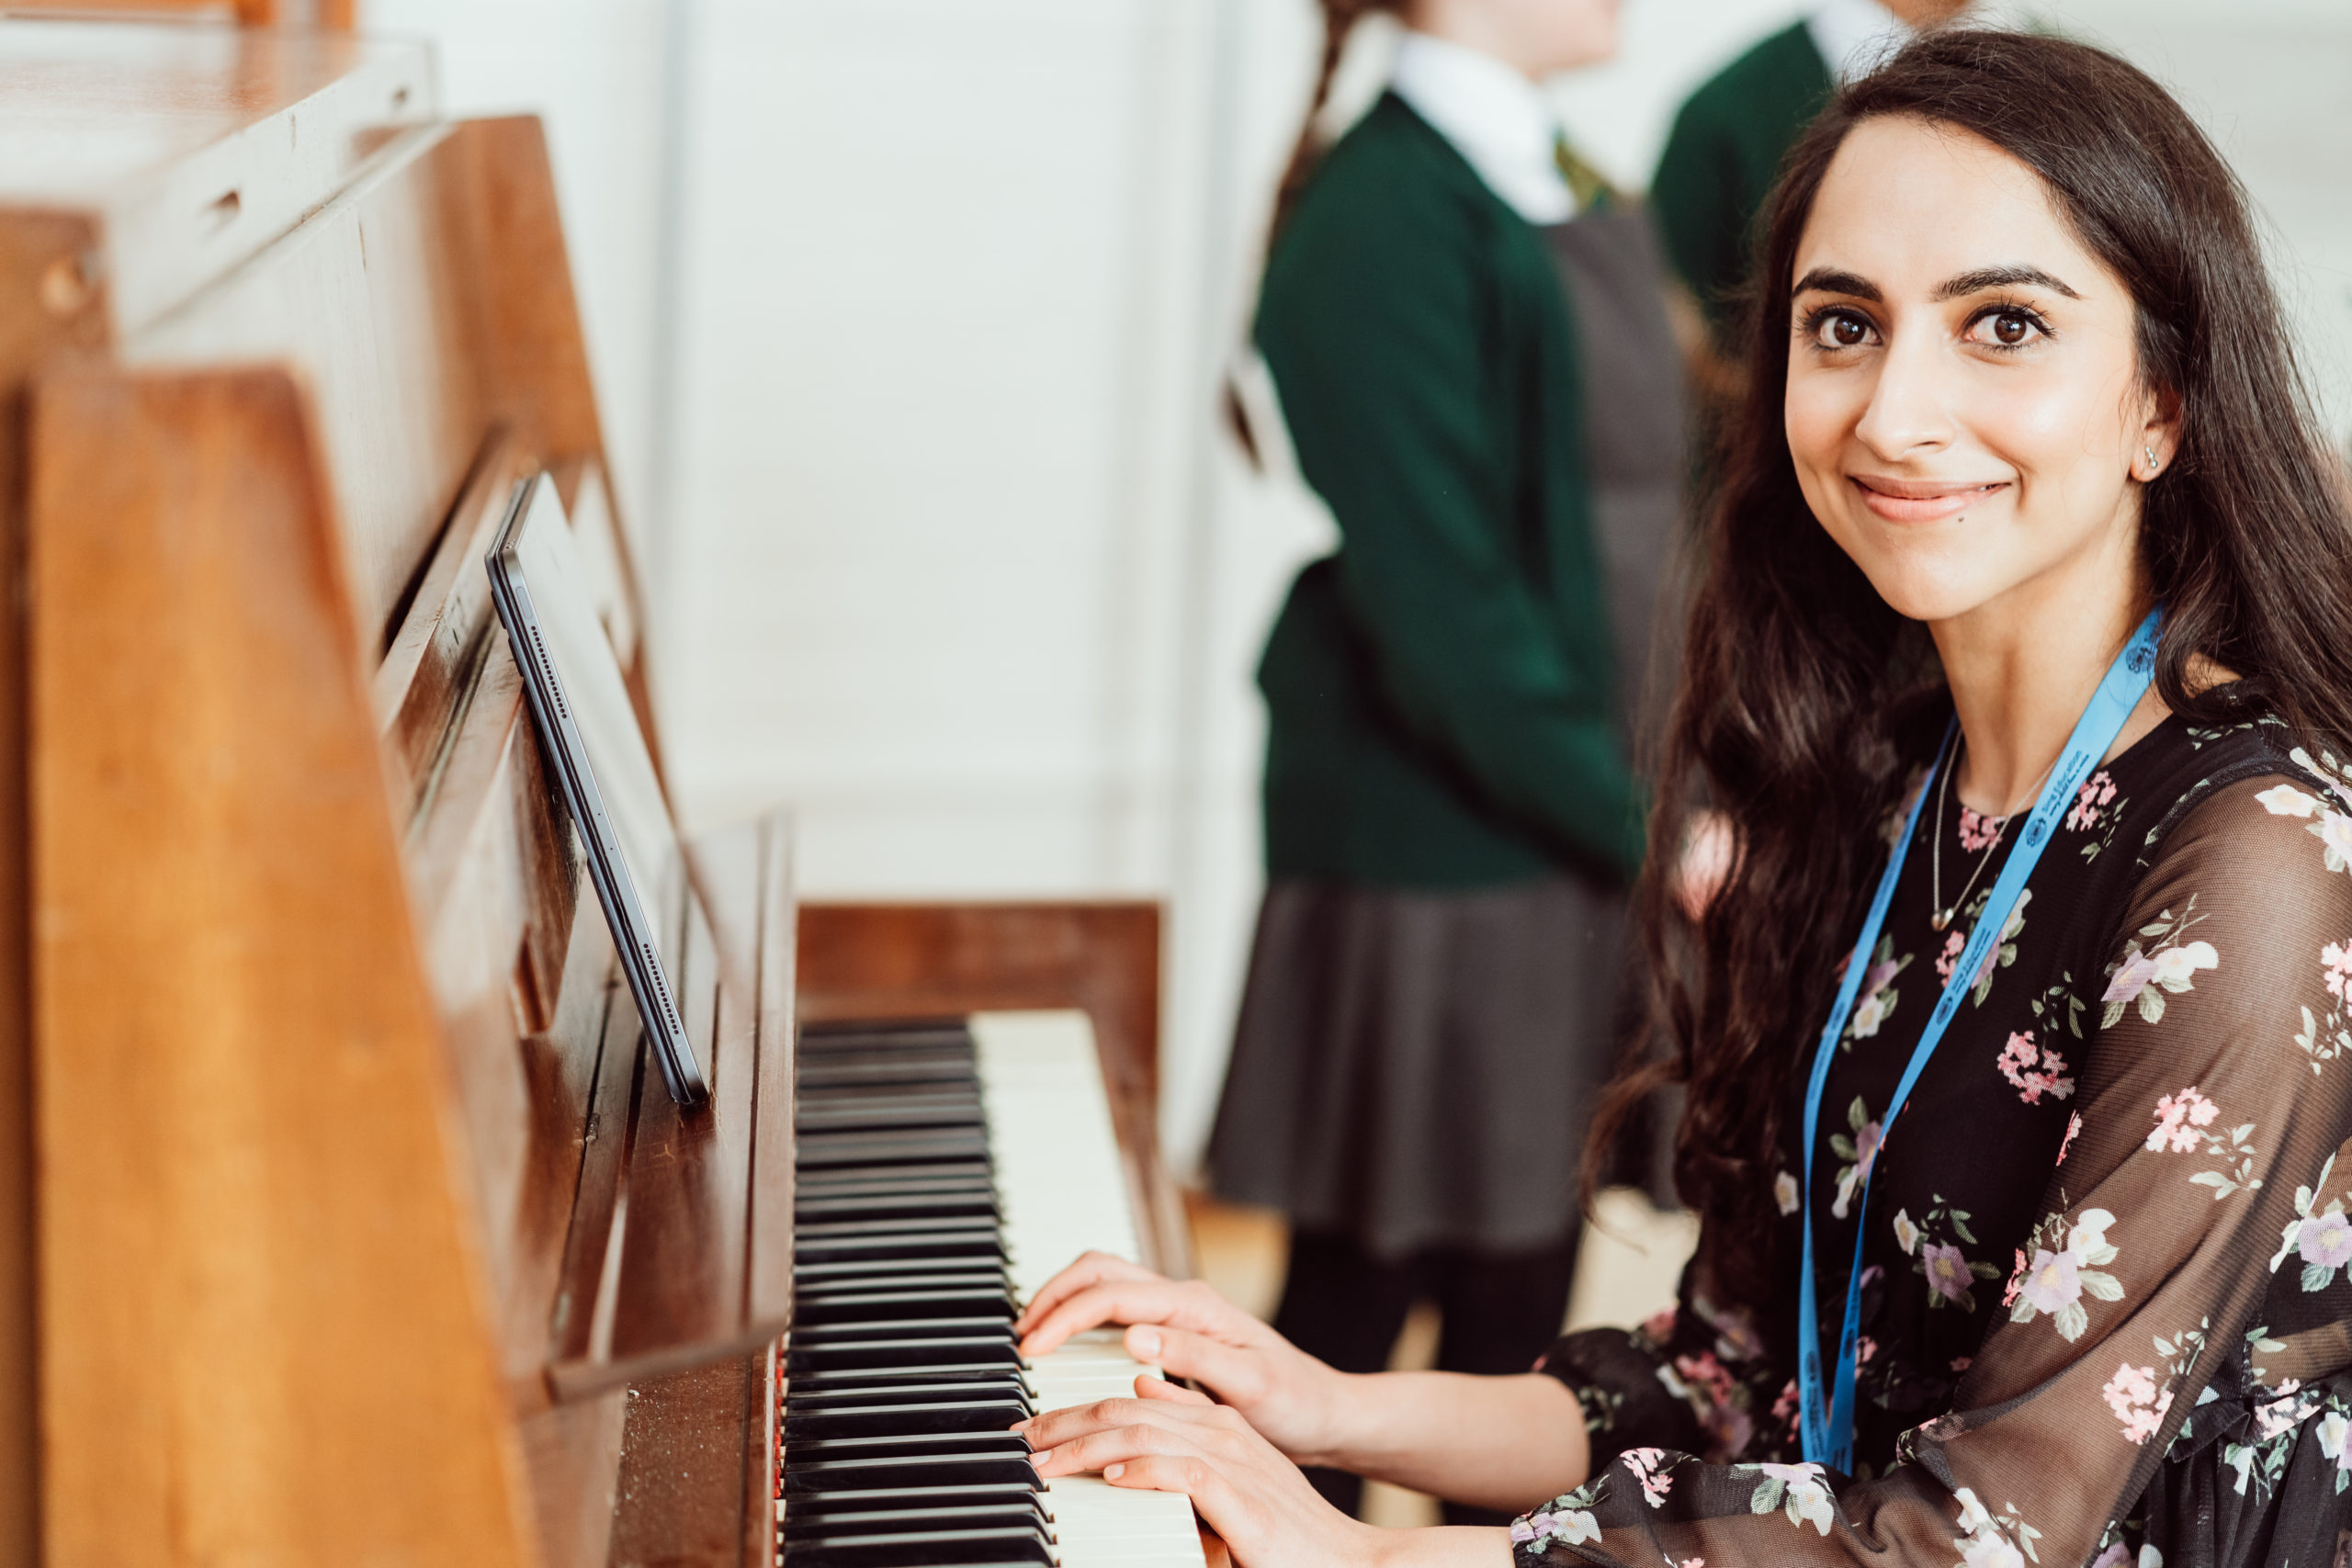 Female sitting at a piano, hands on the piano, female in black floral dress, two primary pupils in background.